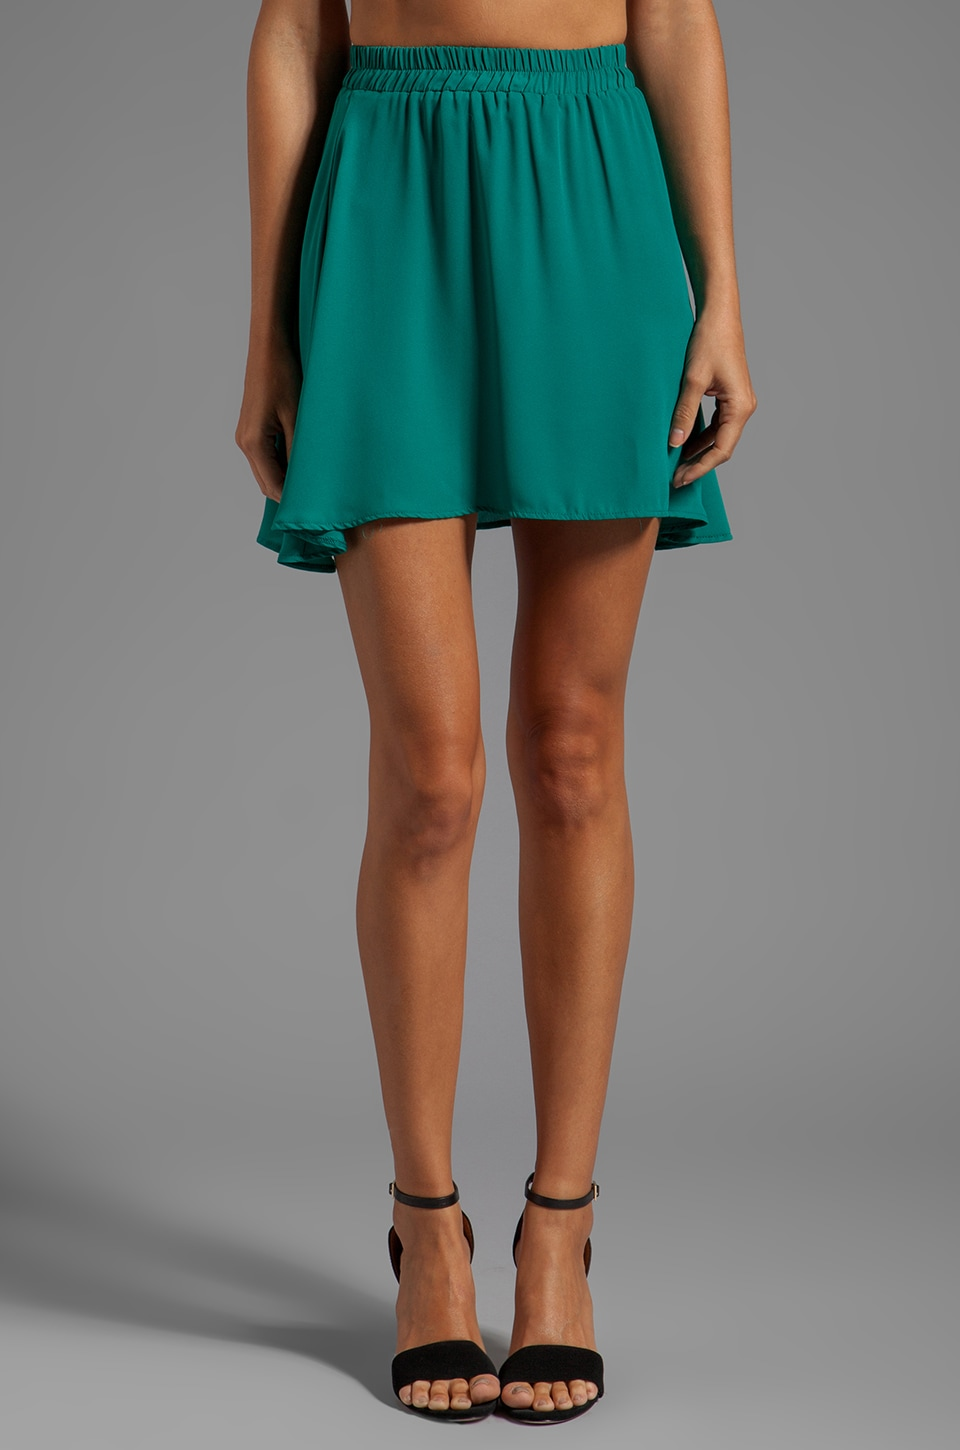 Donna Mizani Circlet Skirt in Jade